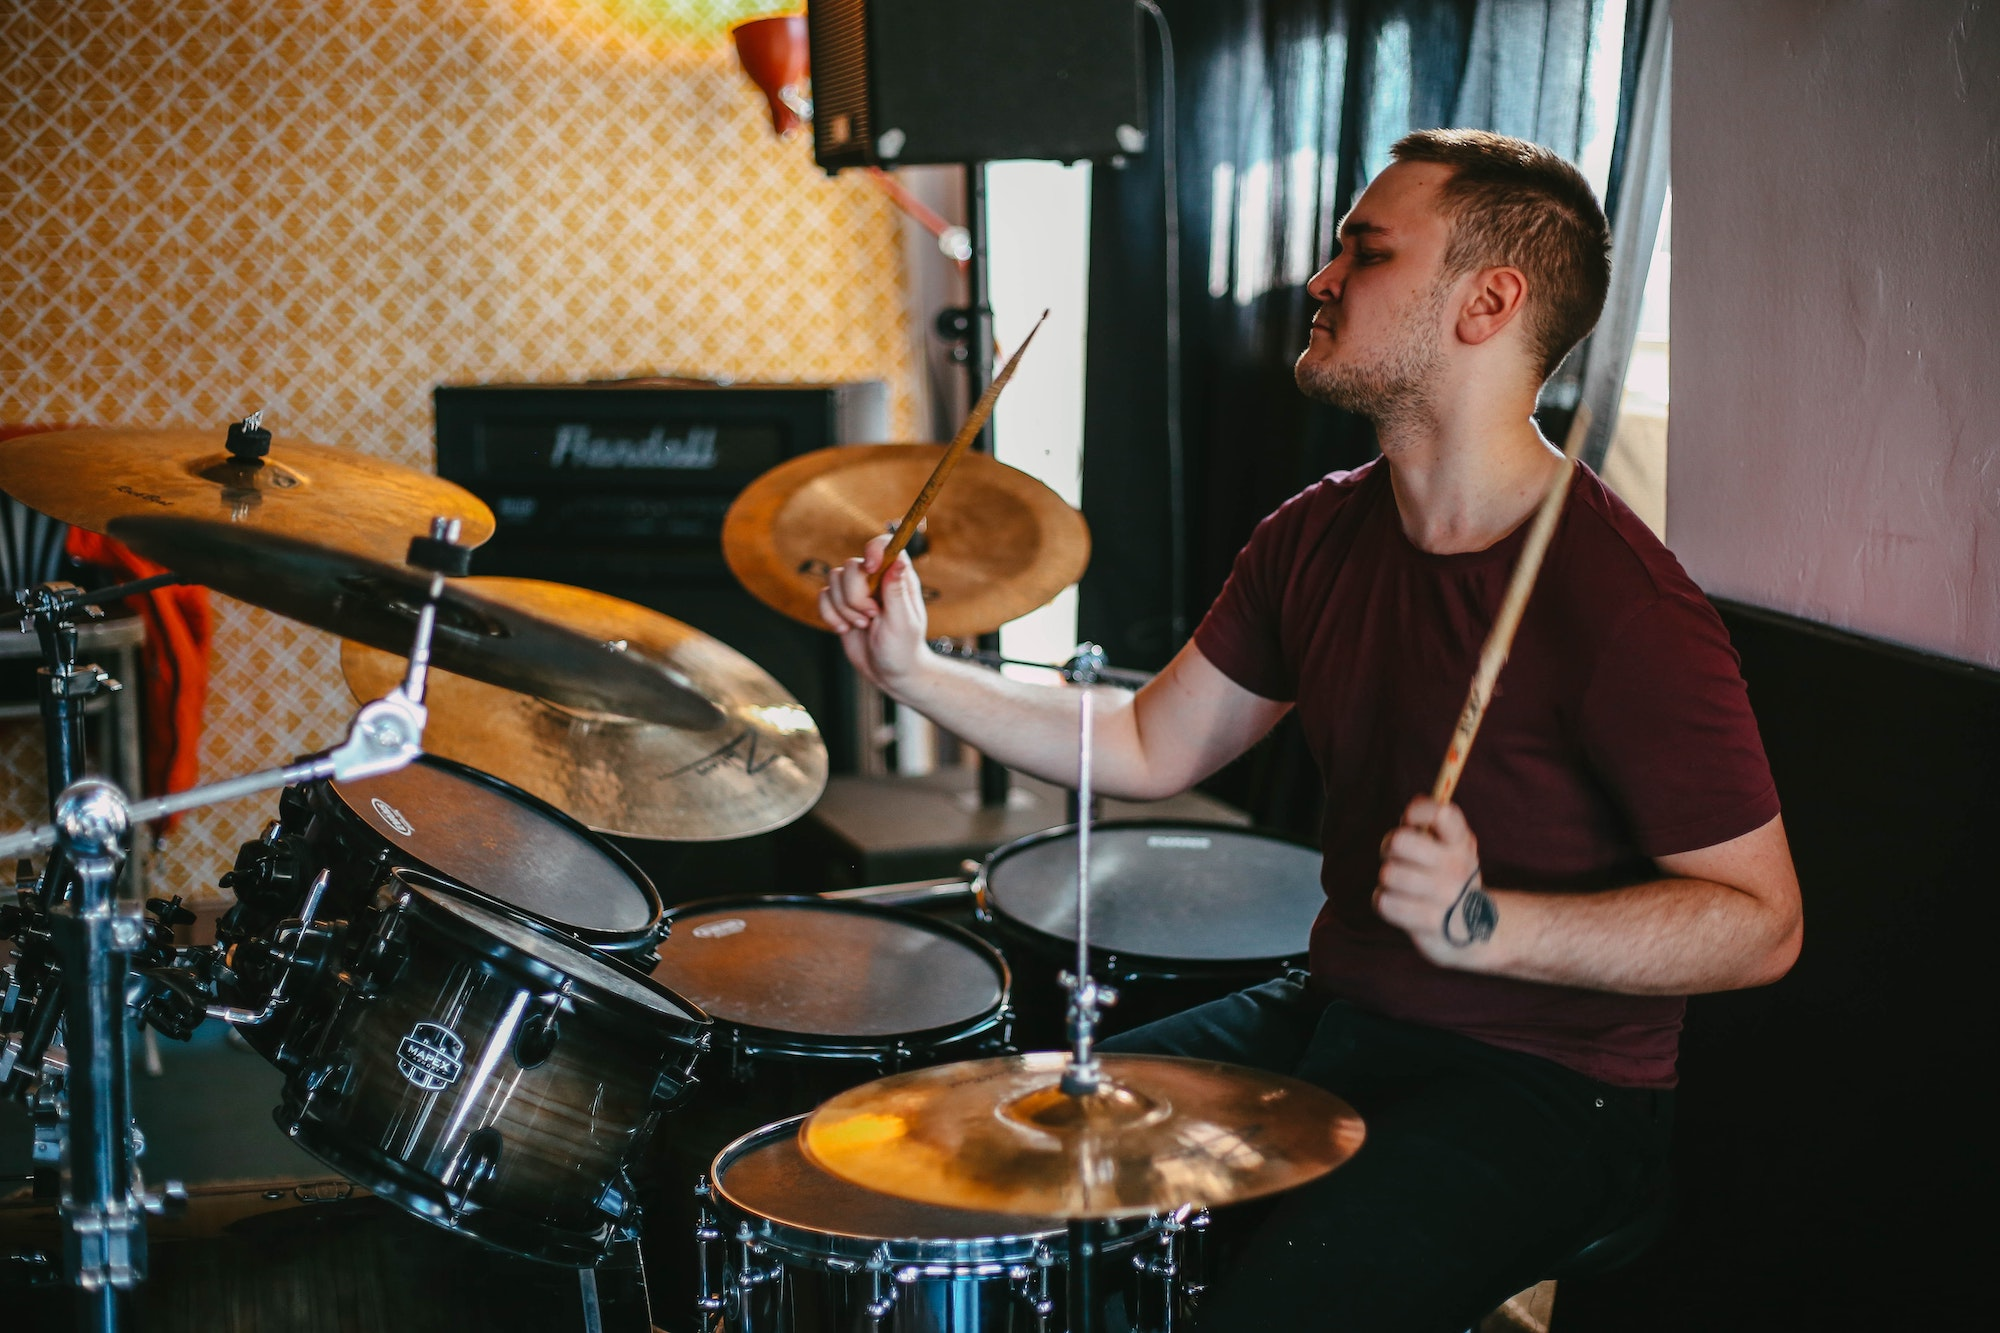 Young man playing an acoustic drum kit and hitting the crash cymbal.